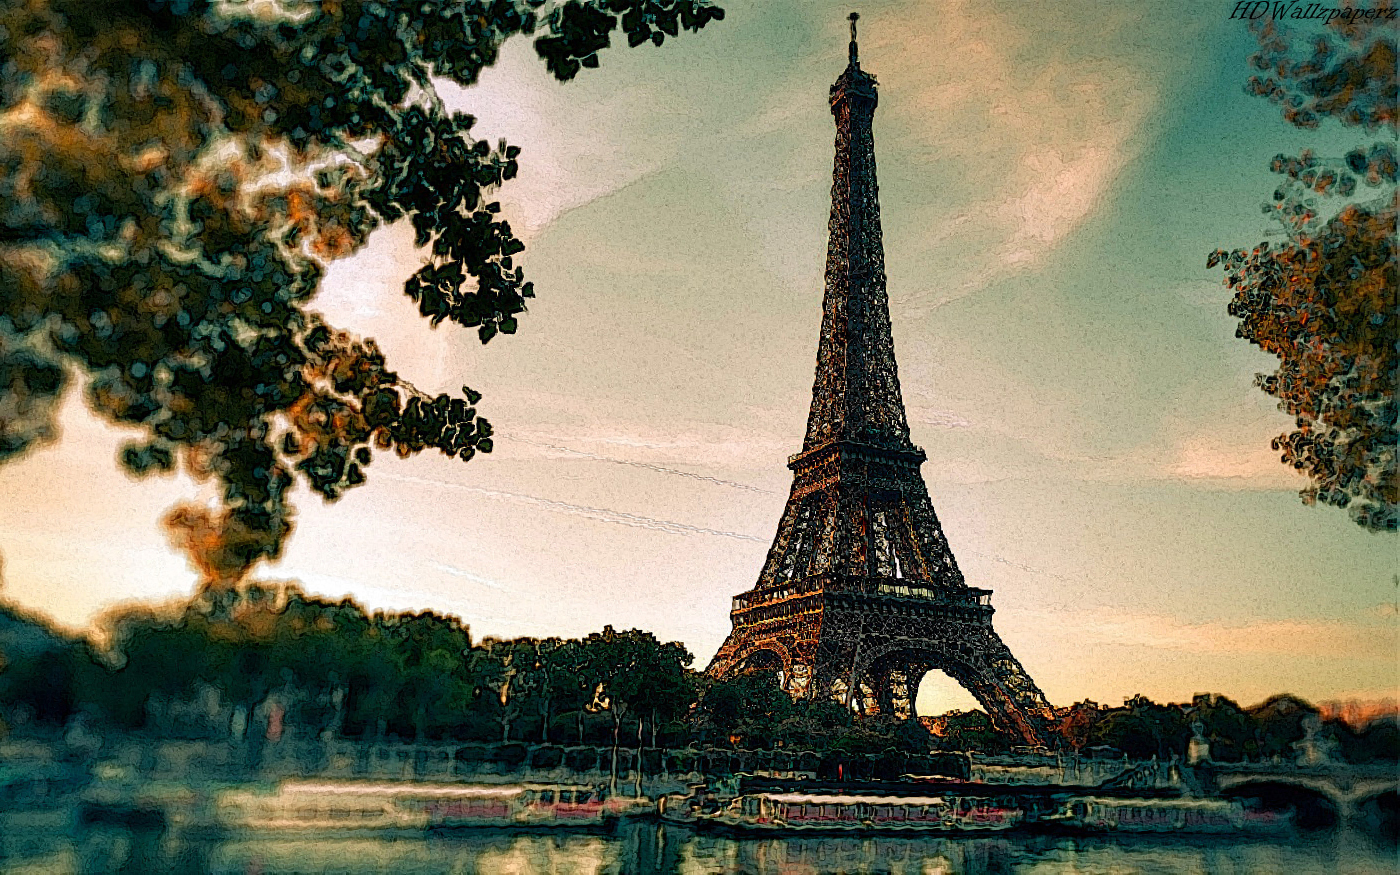 Eiffel Tower Hd Images 04547: HD Wallpapers